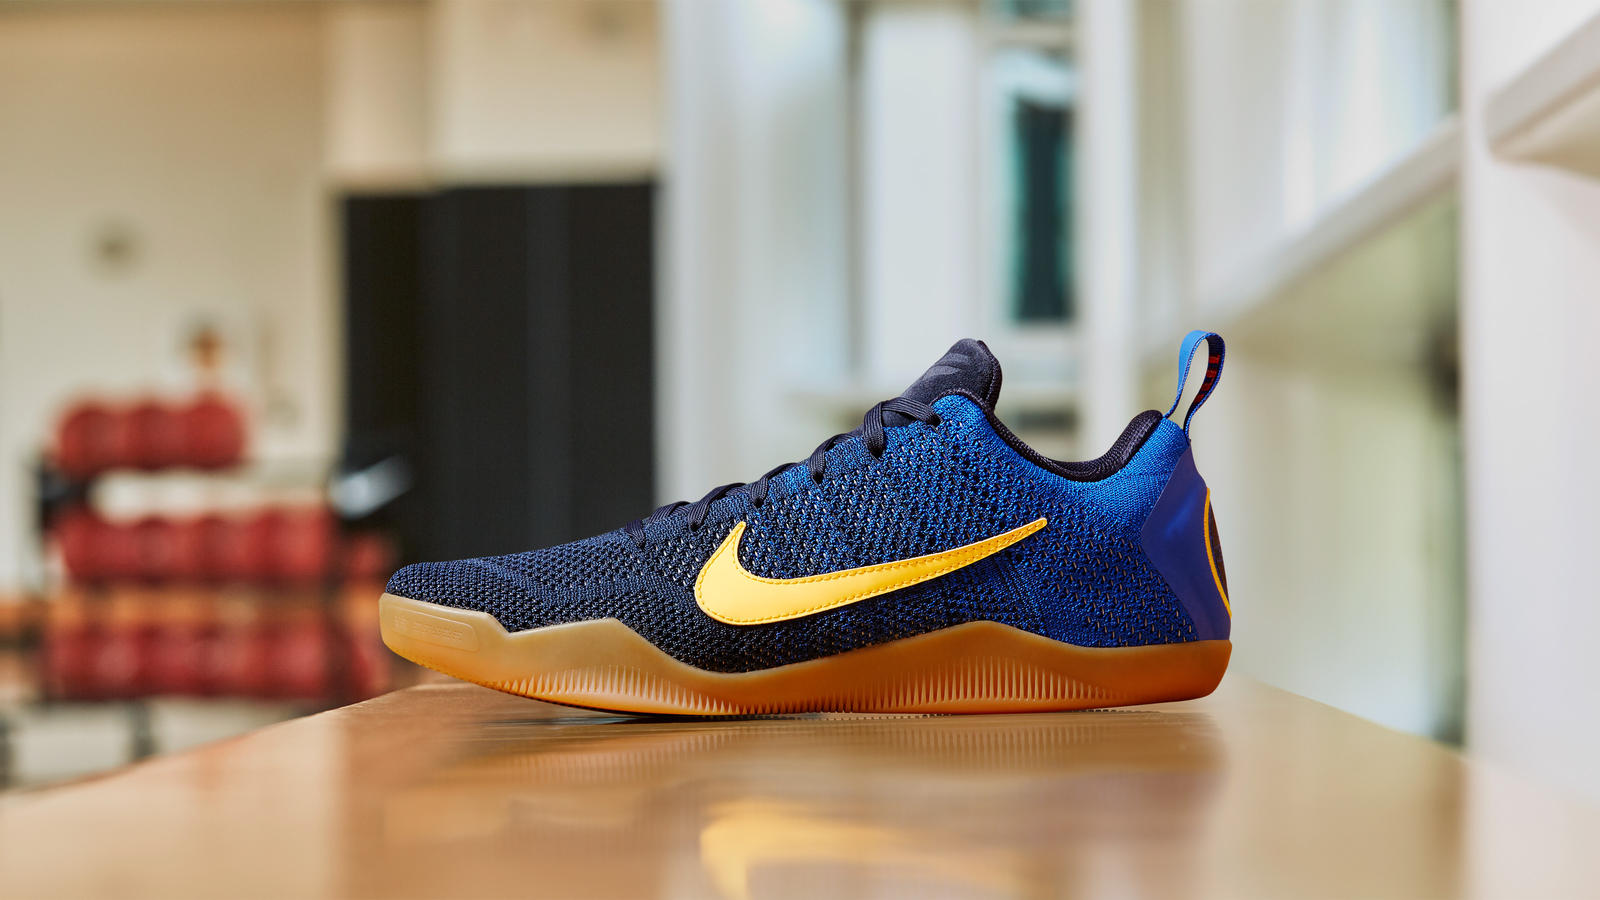 0ee87c4e406c NIKE NEWS SNEAKER FEED KB BLUE 0016 hd 1600. KOBE 11 MAMBACURIAL. Nike